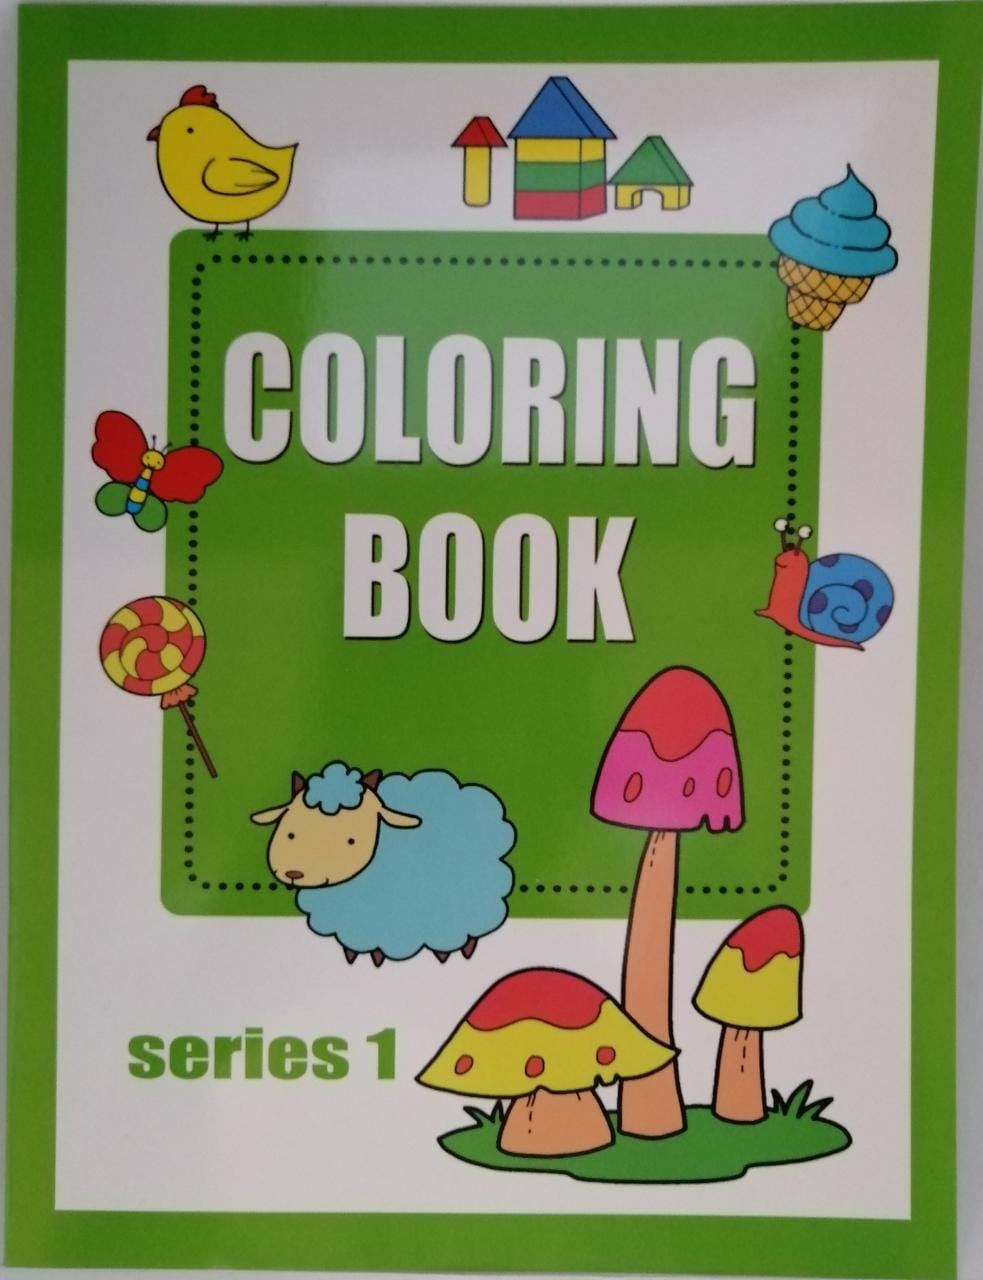 Coloring Books: Series 1